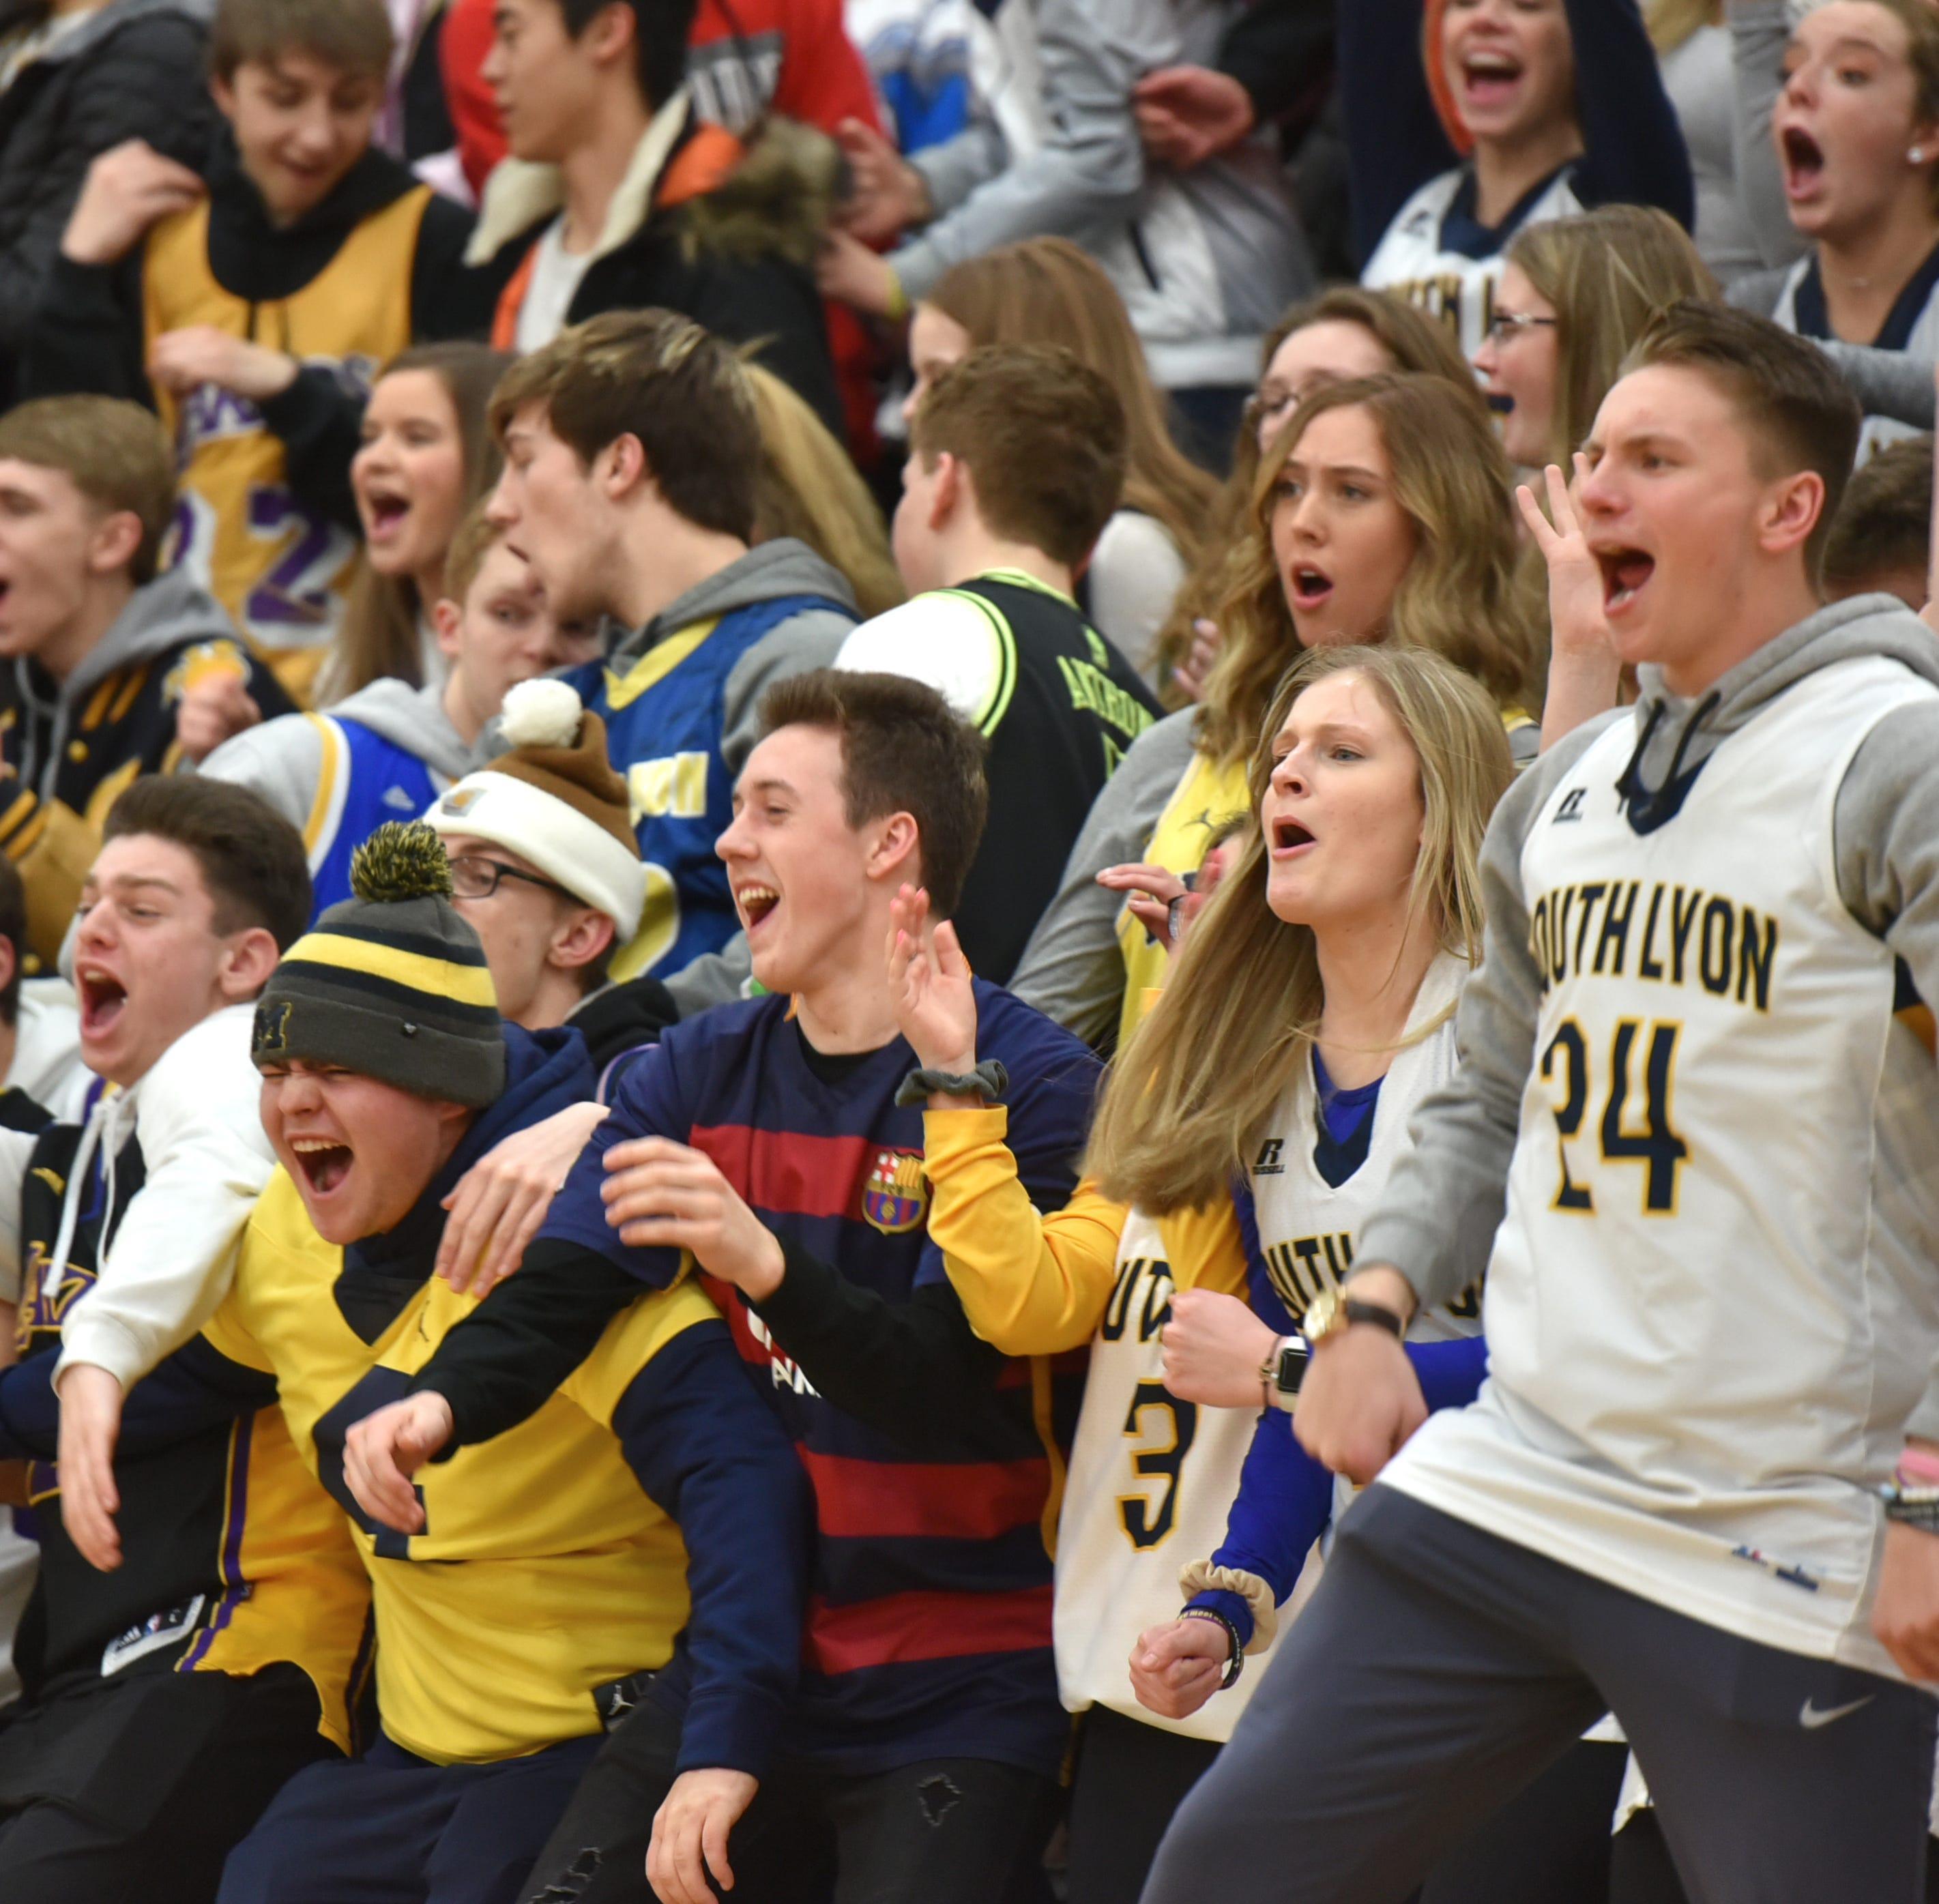 South Lyon student cheering sections add flavor to hoops rivalry